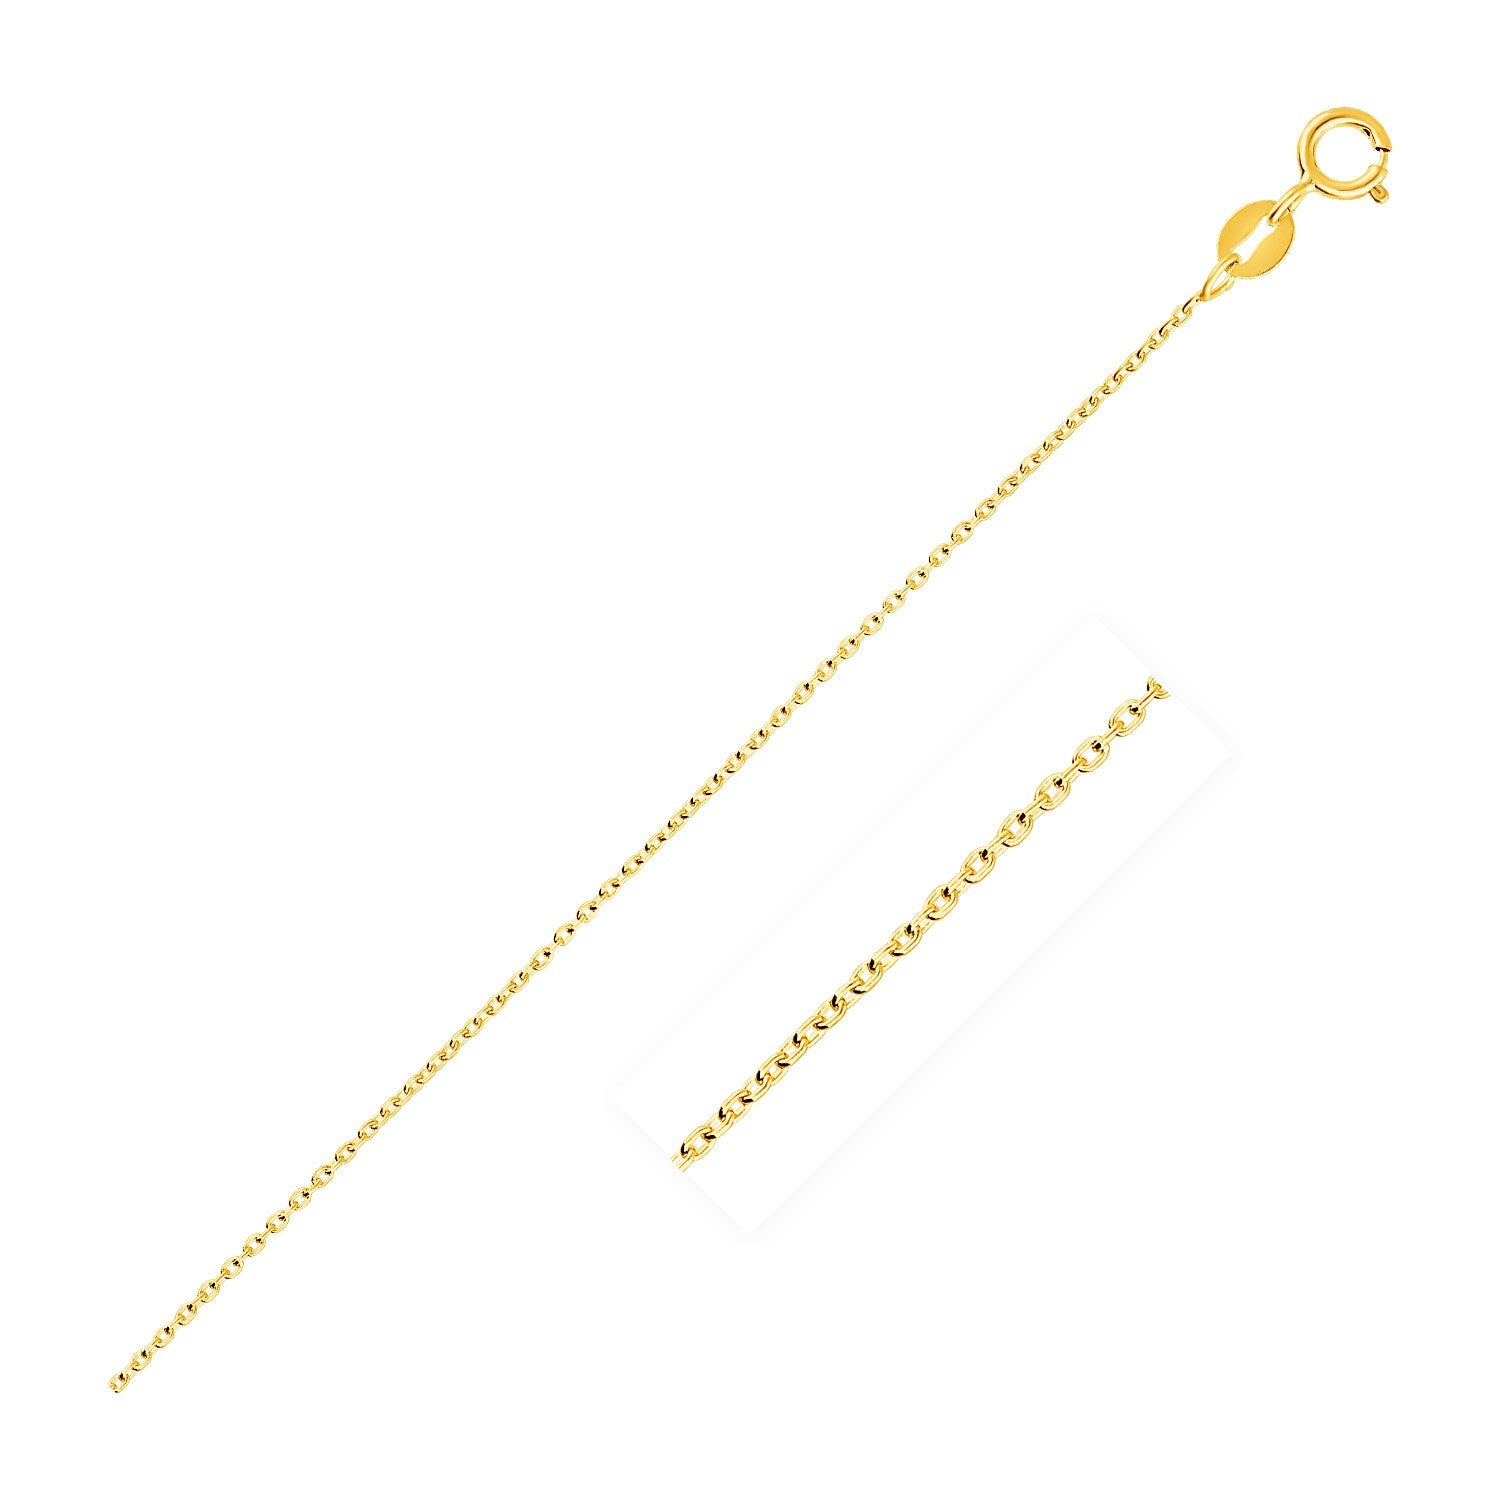 0.7mm 14K Yellow Gold Oval Cable Link Chain